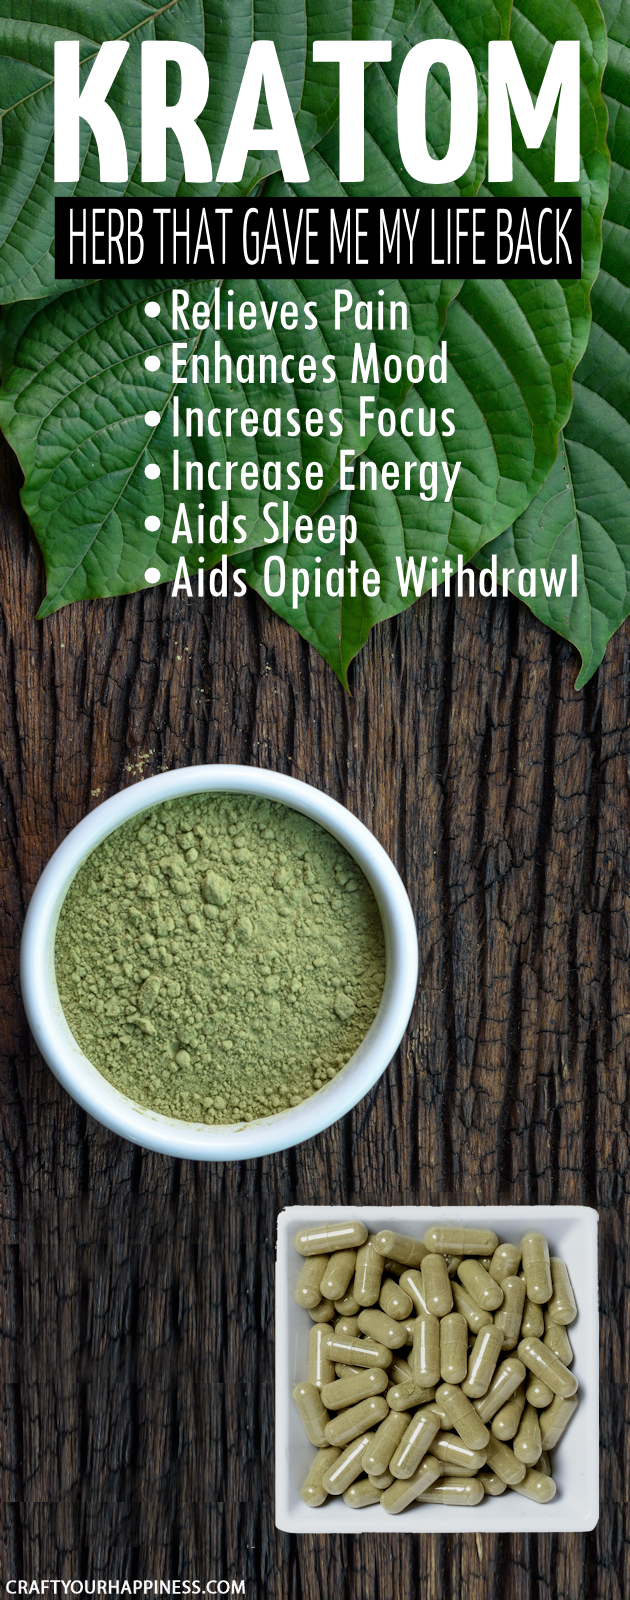 Looking for a natural pain relief supplement that is safe and actually works?  The herb Kratom could be the answer to your prayers for pain and much more.